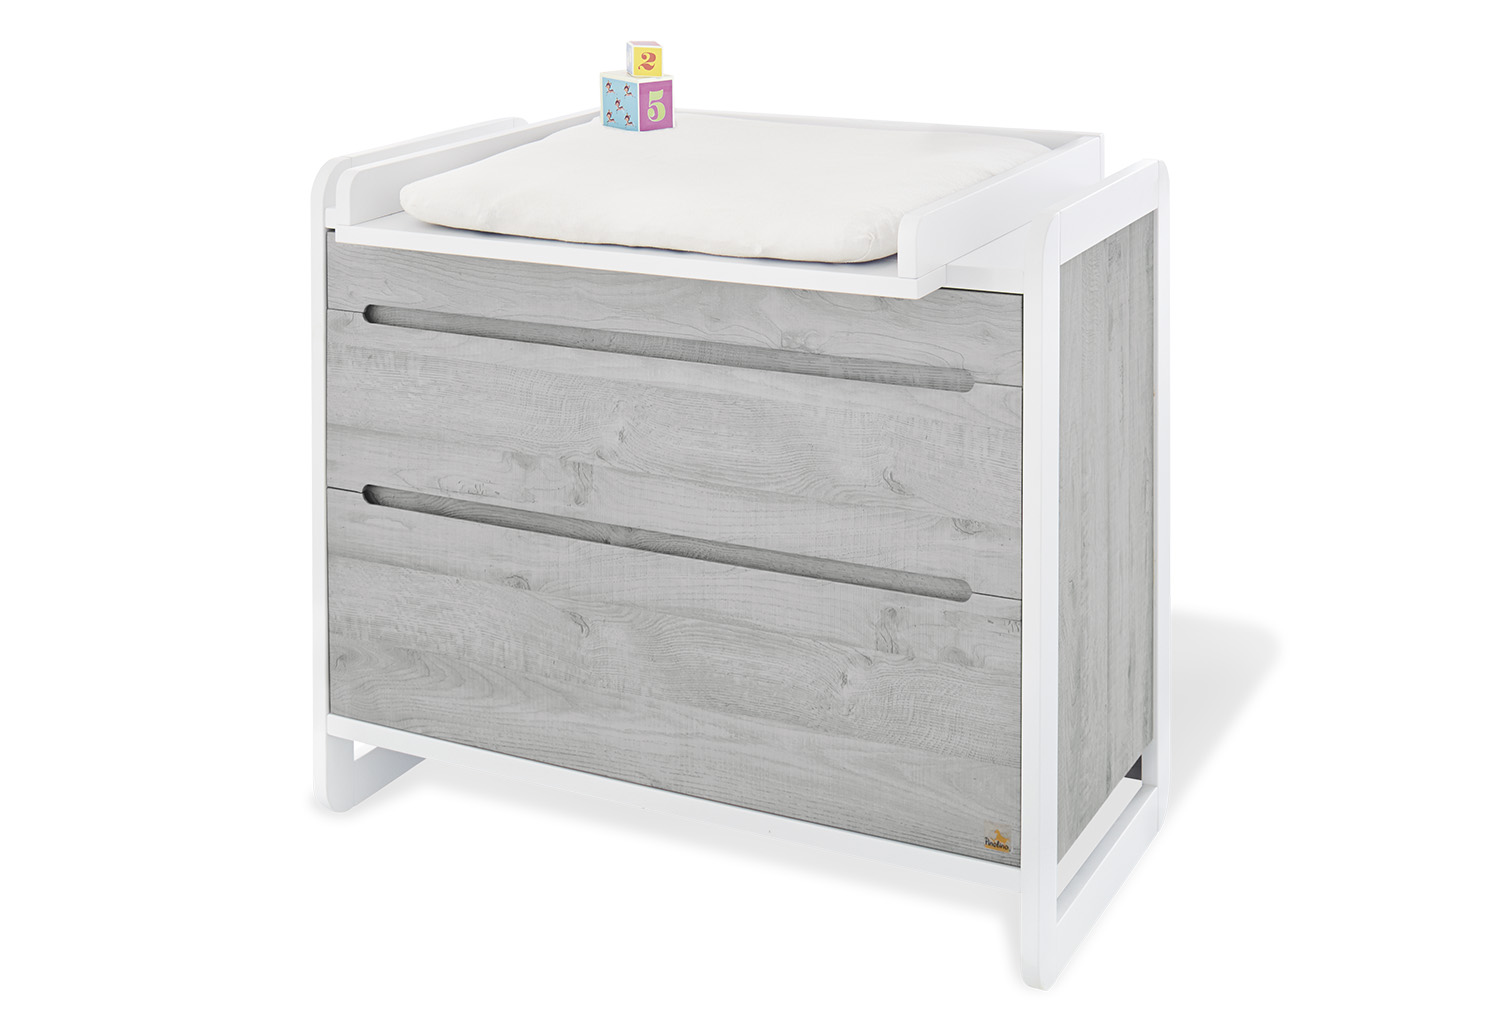 Commode Gris Anthracite Lit Bébé Et Commode à Langer Curve Gris